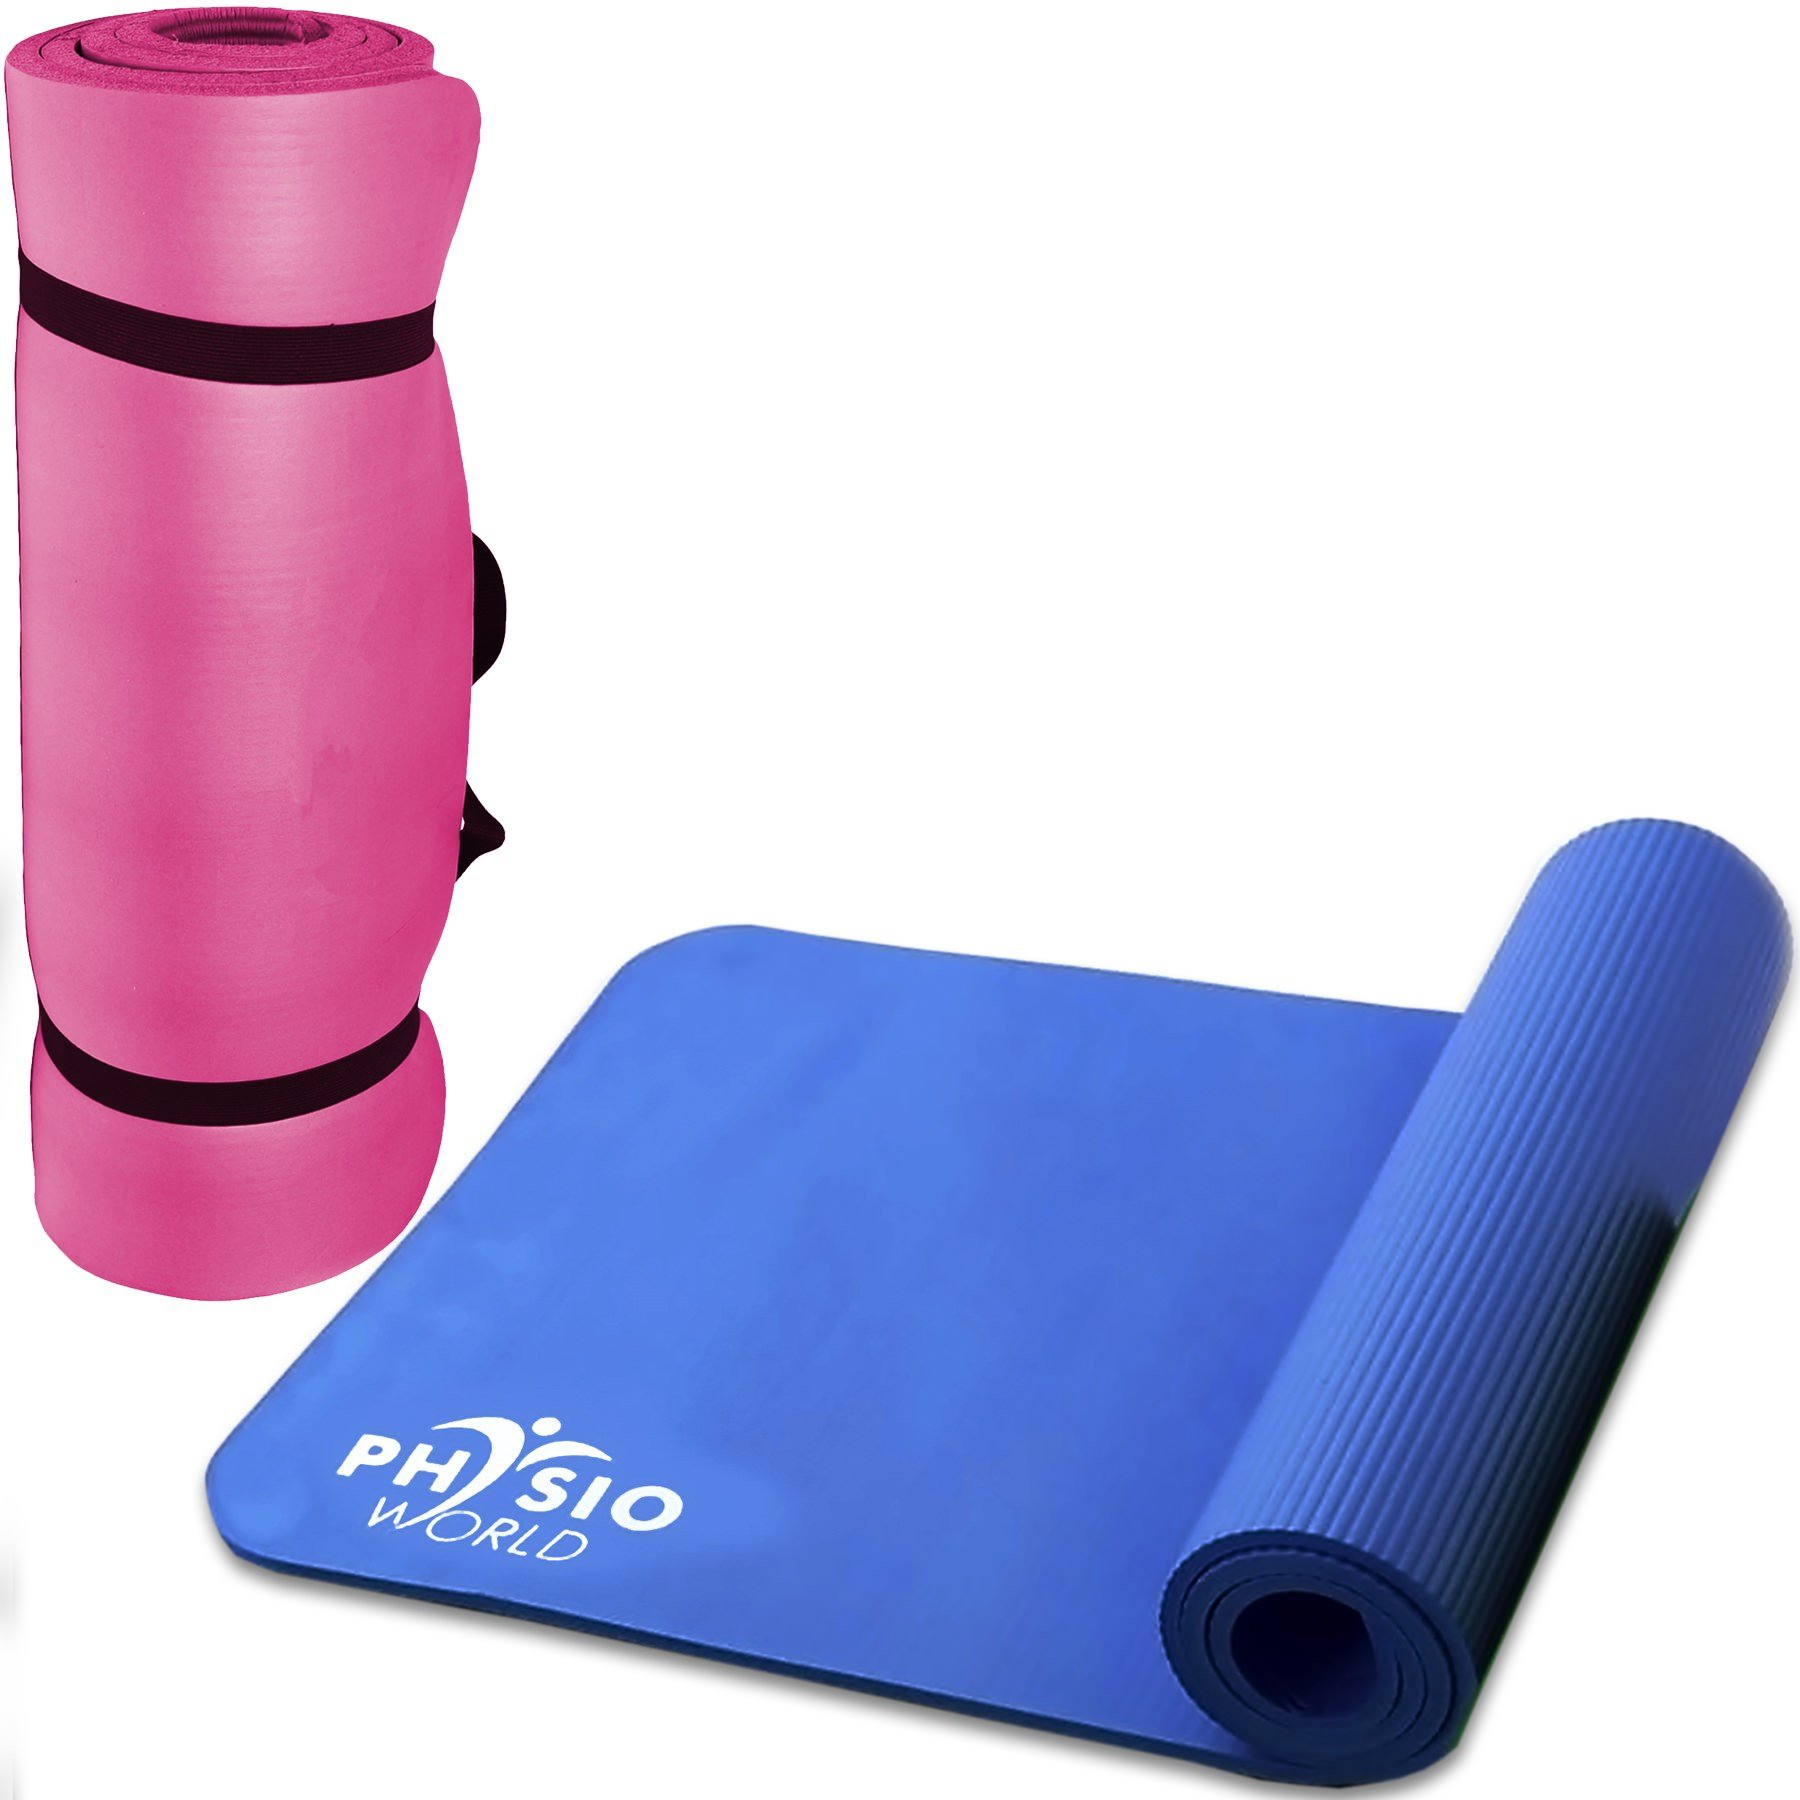 Physio World Thick Exercise Mat - 15mm Pink by phy (Image #2)